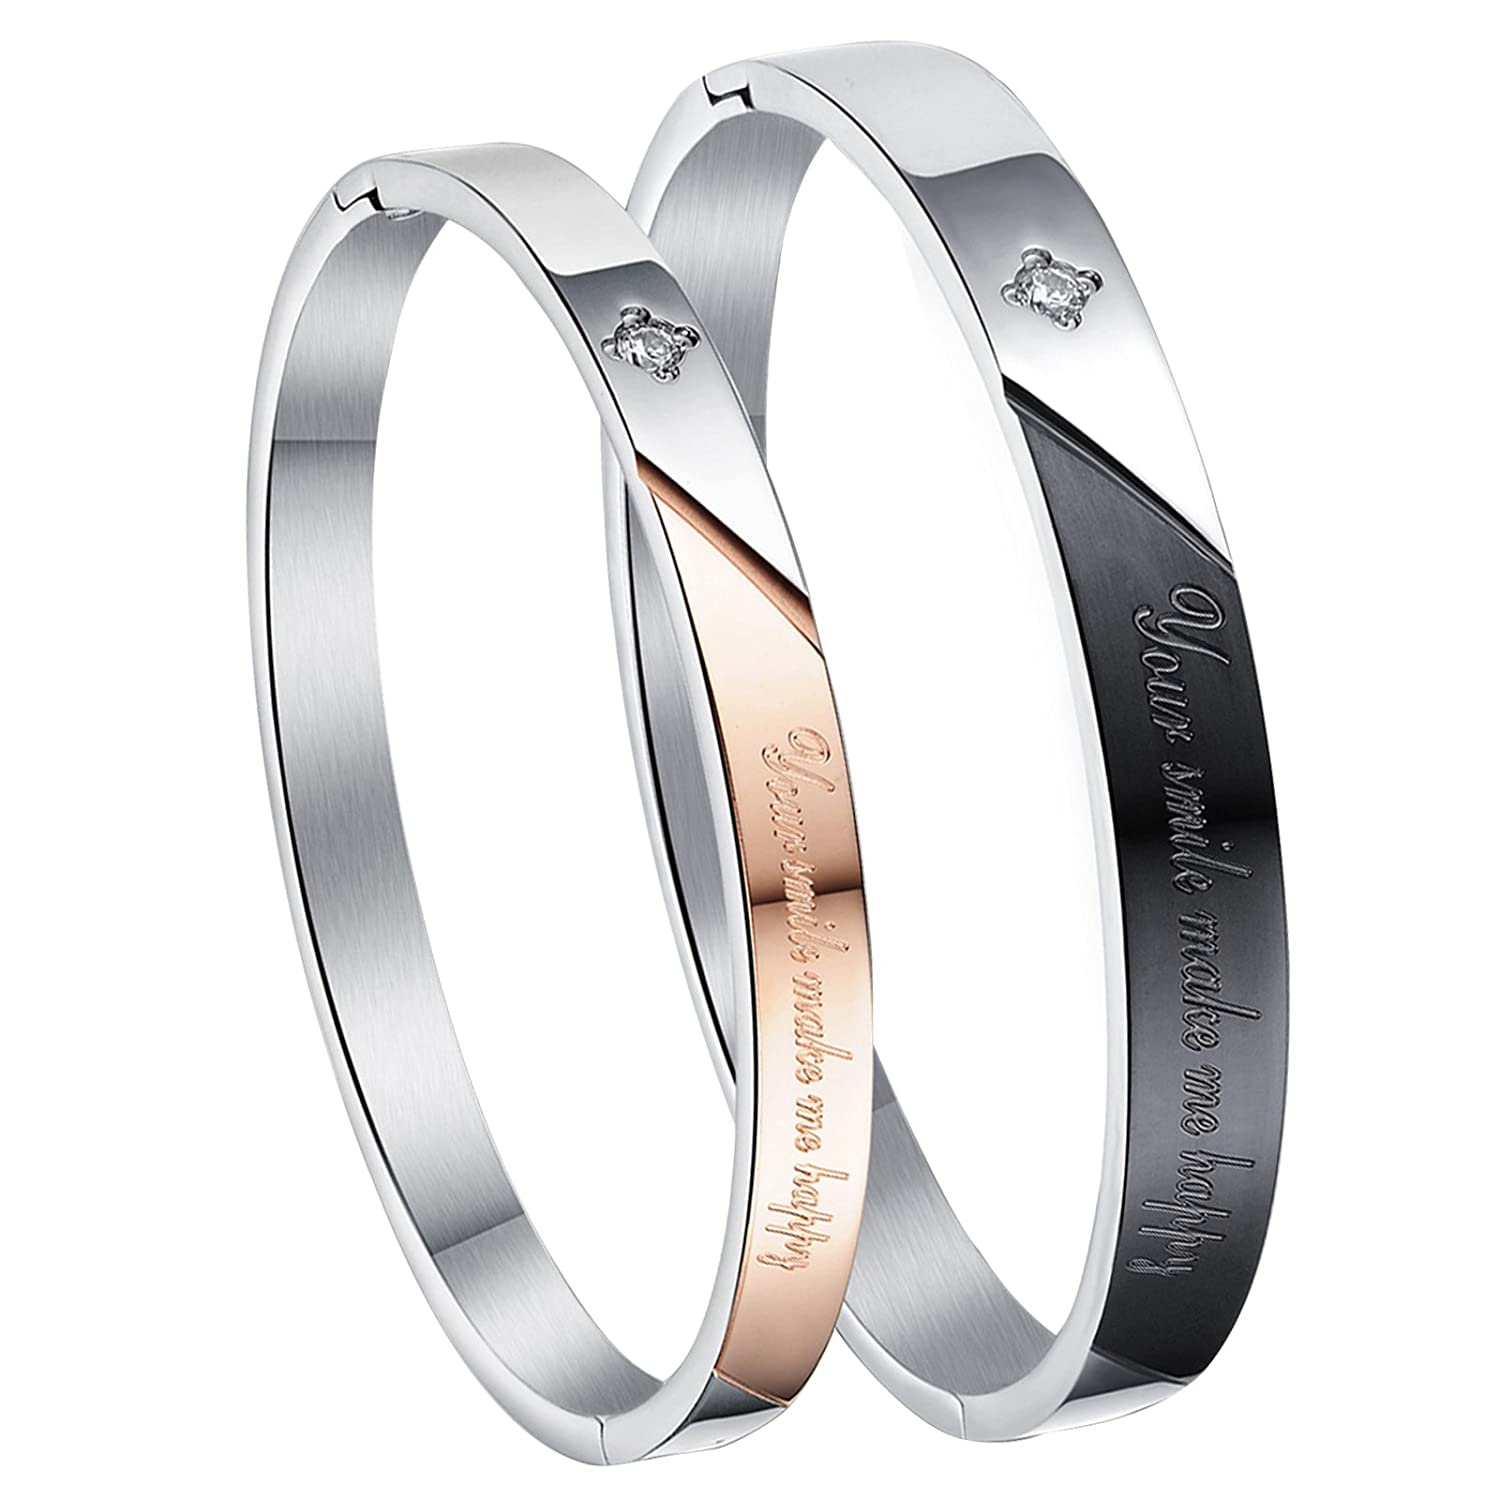 Cupimatch 2pcs Stainless Steel Couples Bracelet Bangle His& Her Matching Set Valentine Romantic Gift C003025